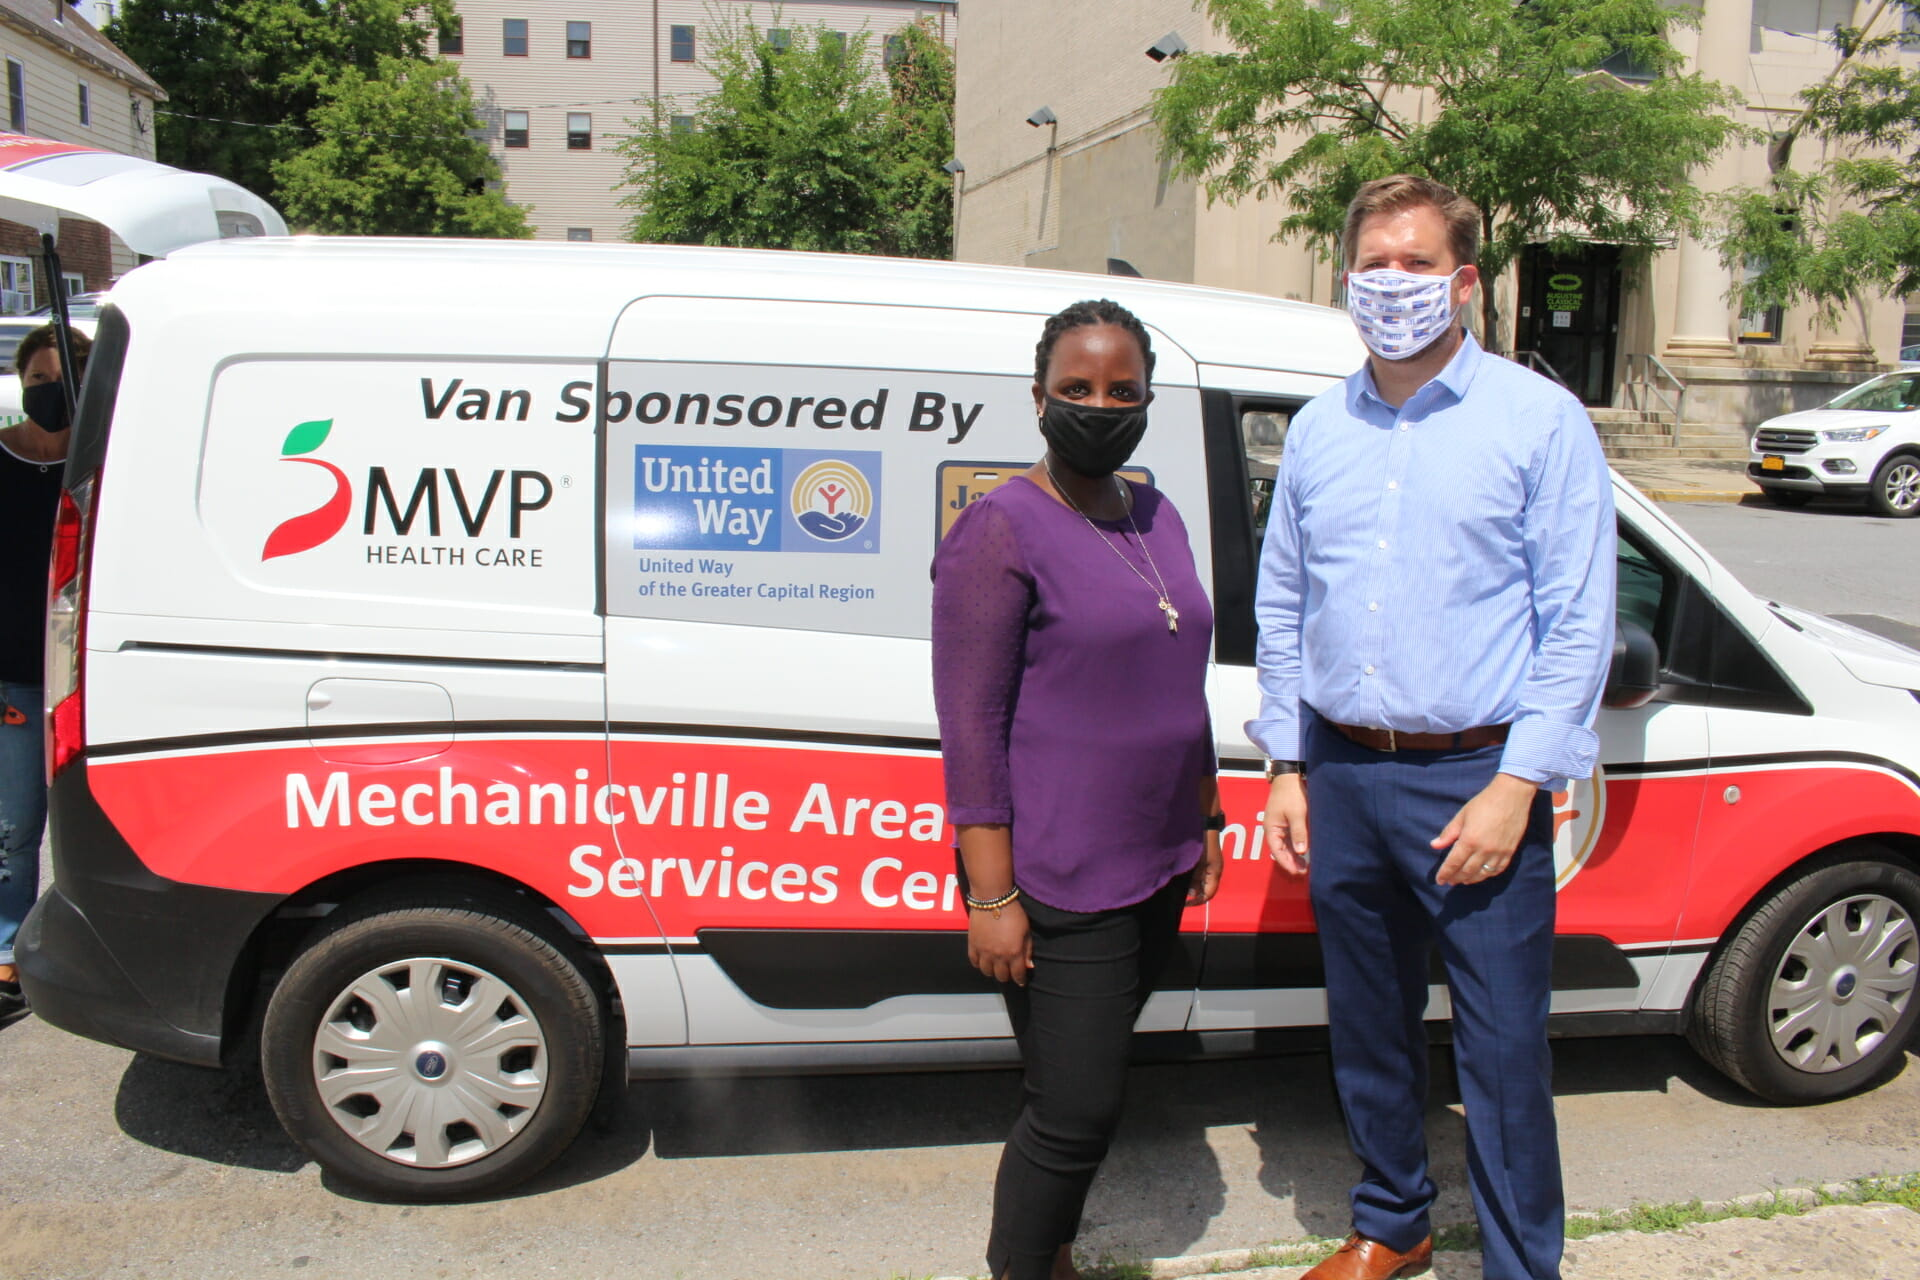 United Way CEO with meal delivery van